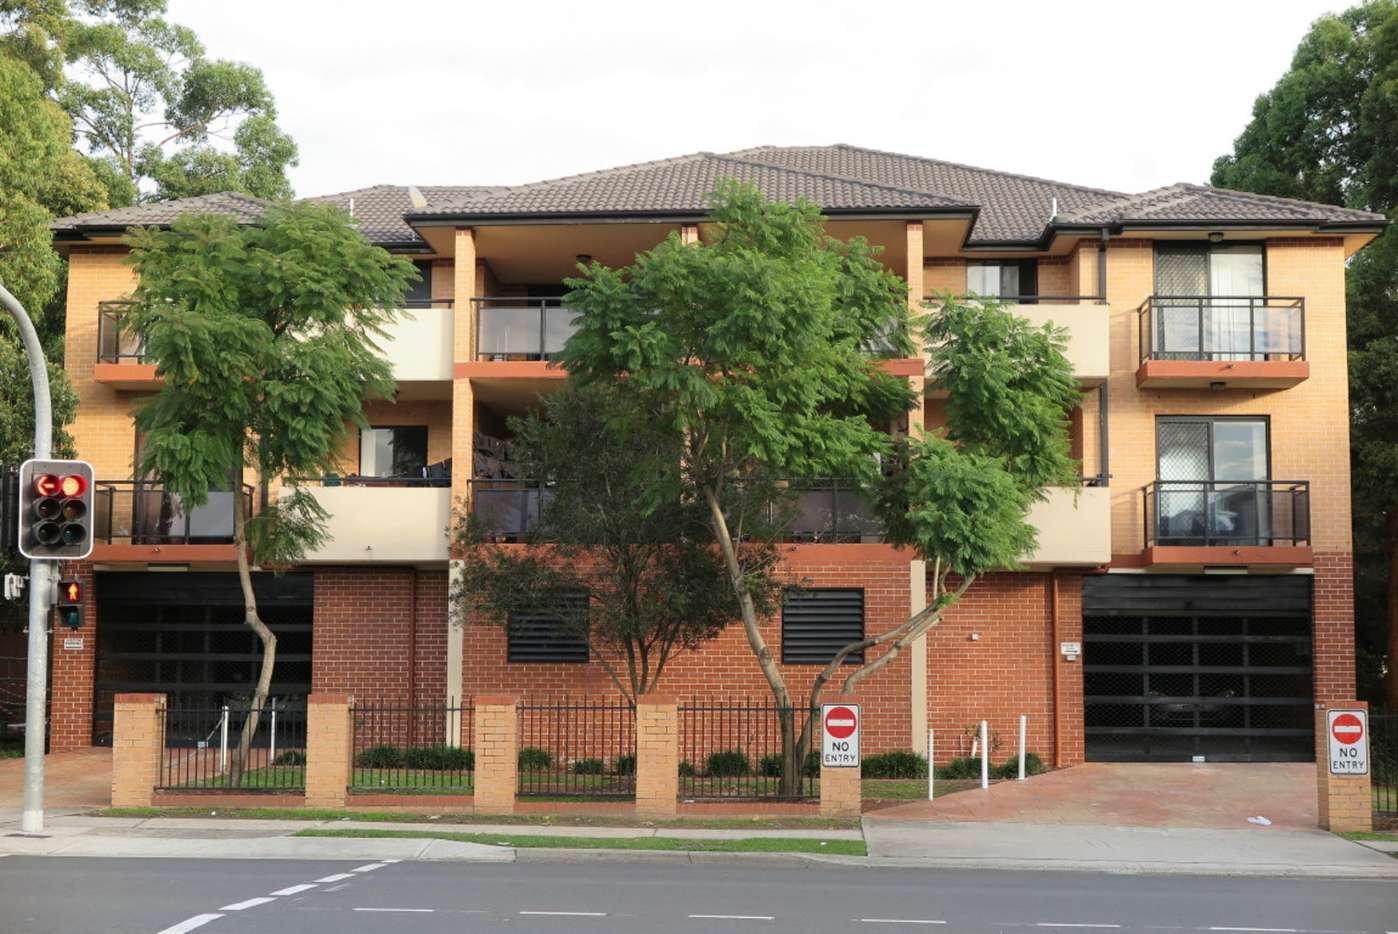 Main view of Homely unit listing, 11/4-6 Treves Street, Merrylands, NSW 2160